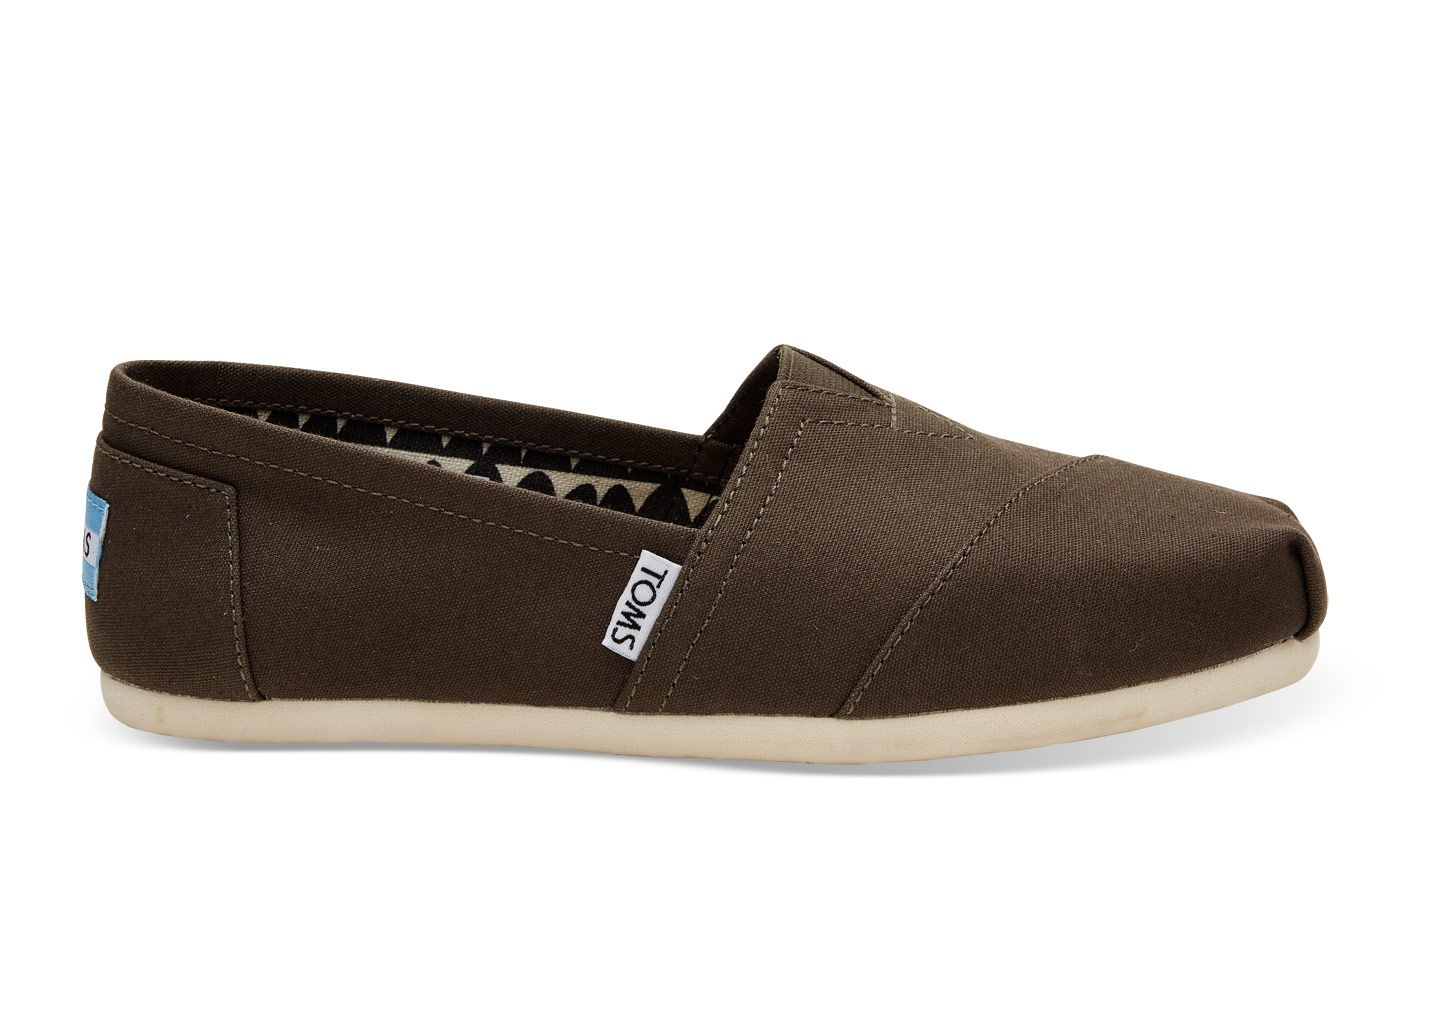 48bb3ccf474 The iconic TOMS slip-ons